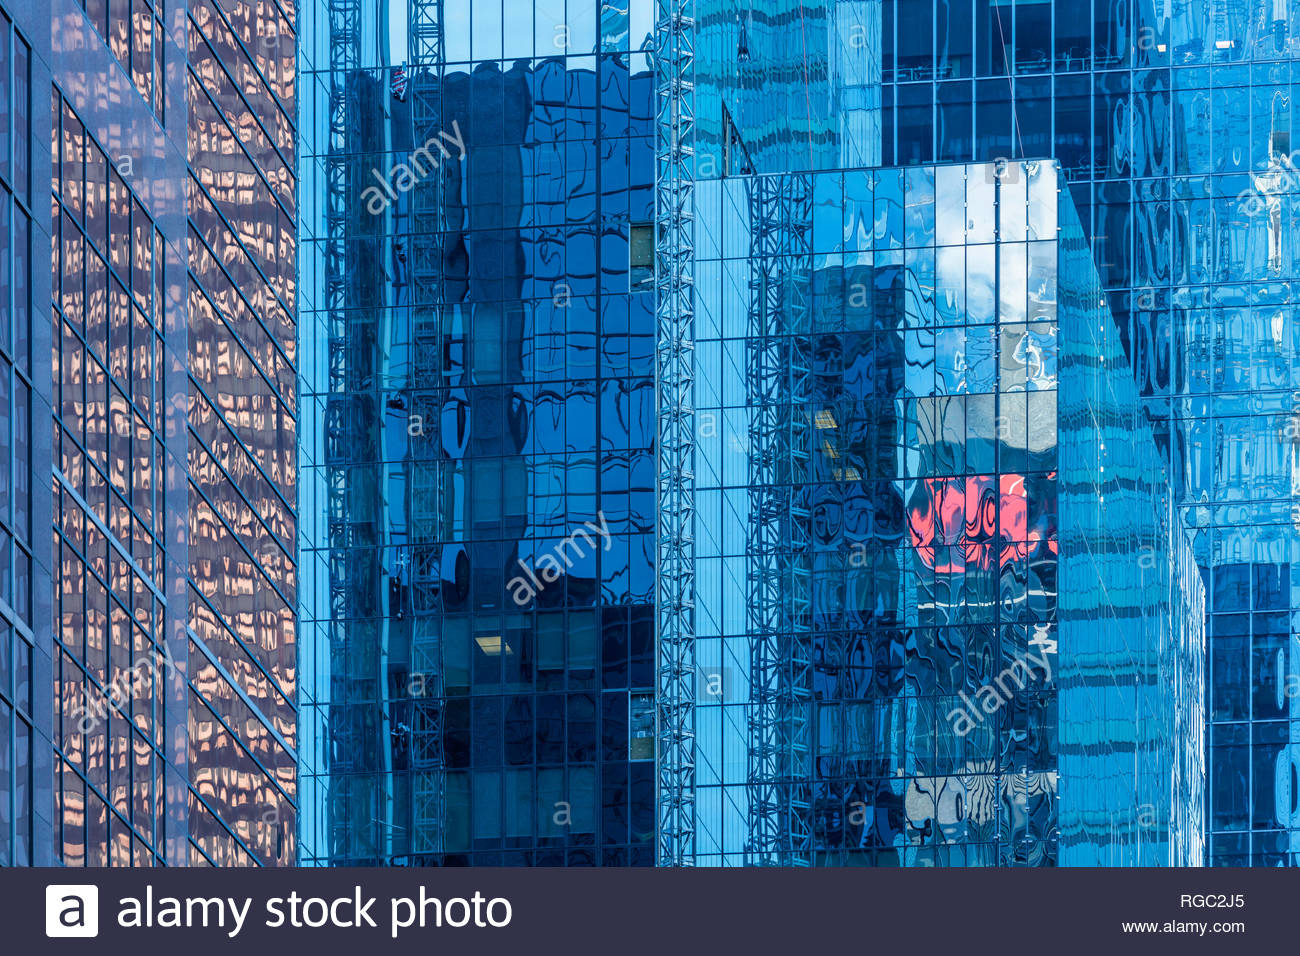 Office building skyscrapers glass walls in the financial district in Toronto Ontario Canada - Stock Image